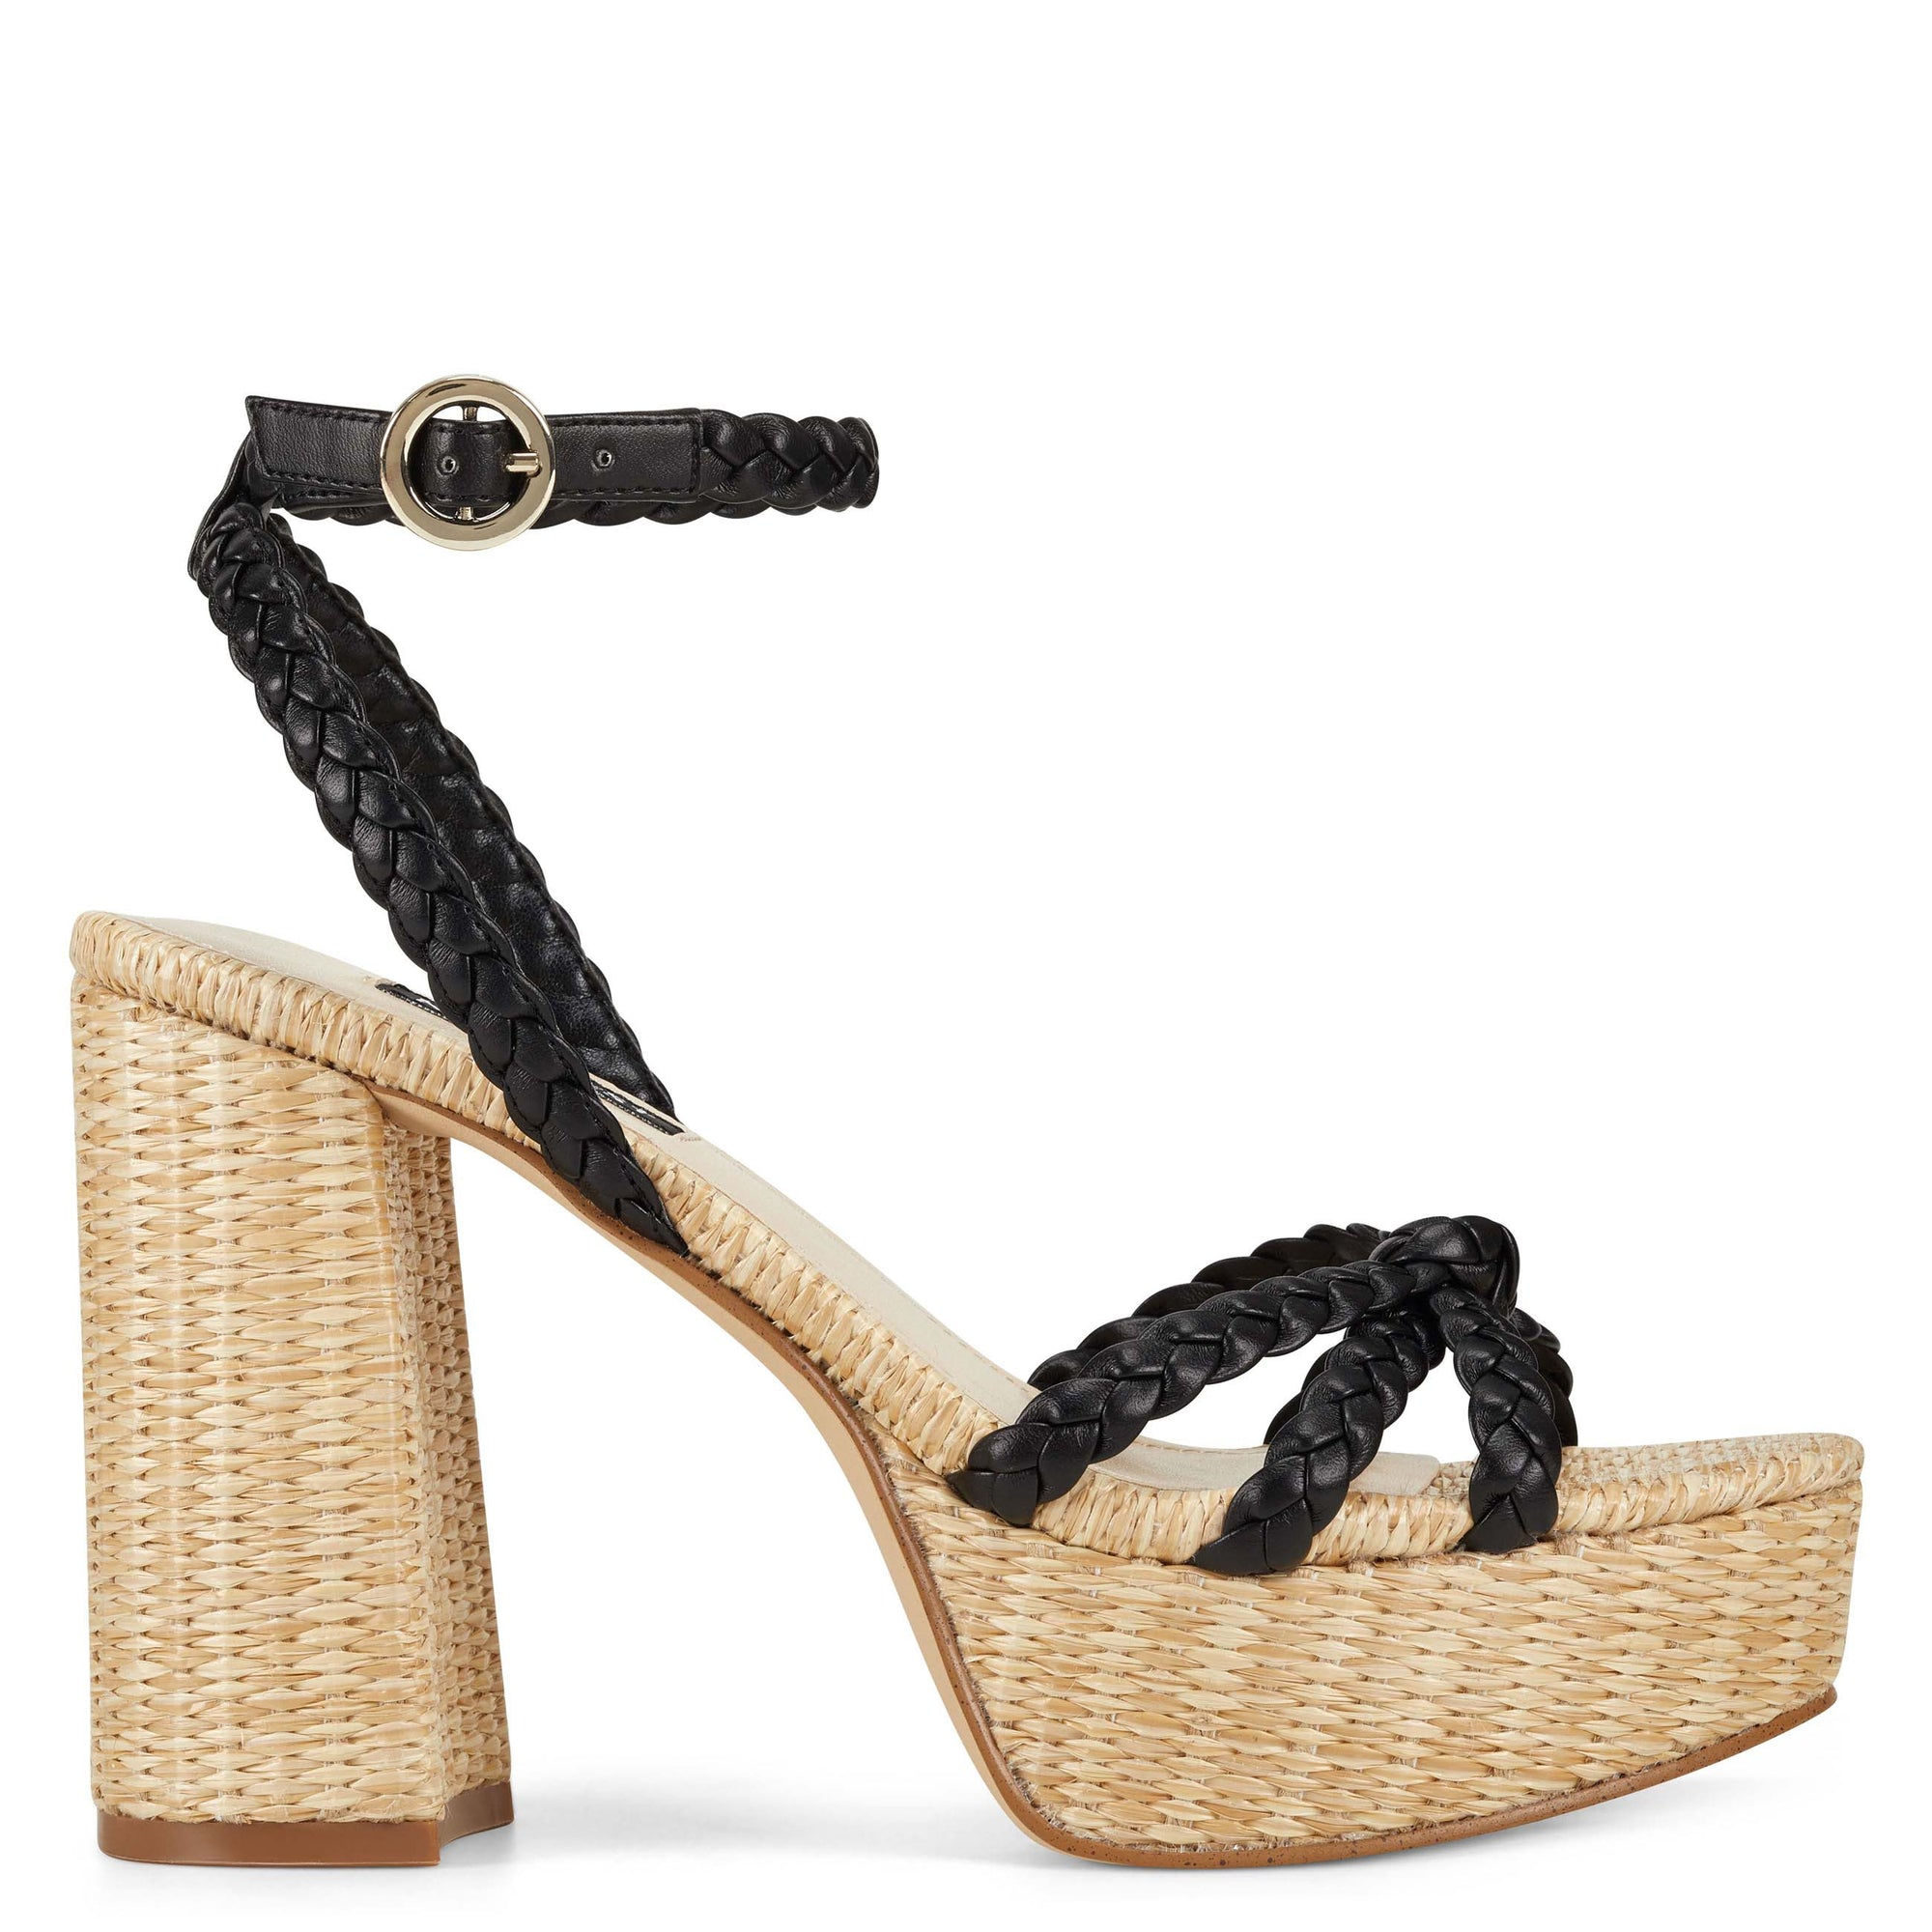 rylin-block-heel-ankle-strap-sandals-in-black